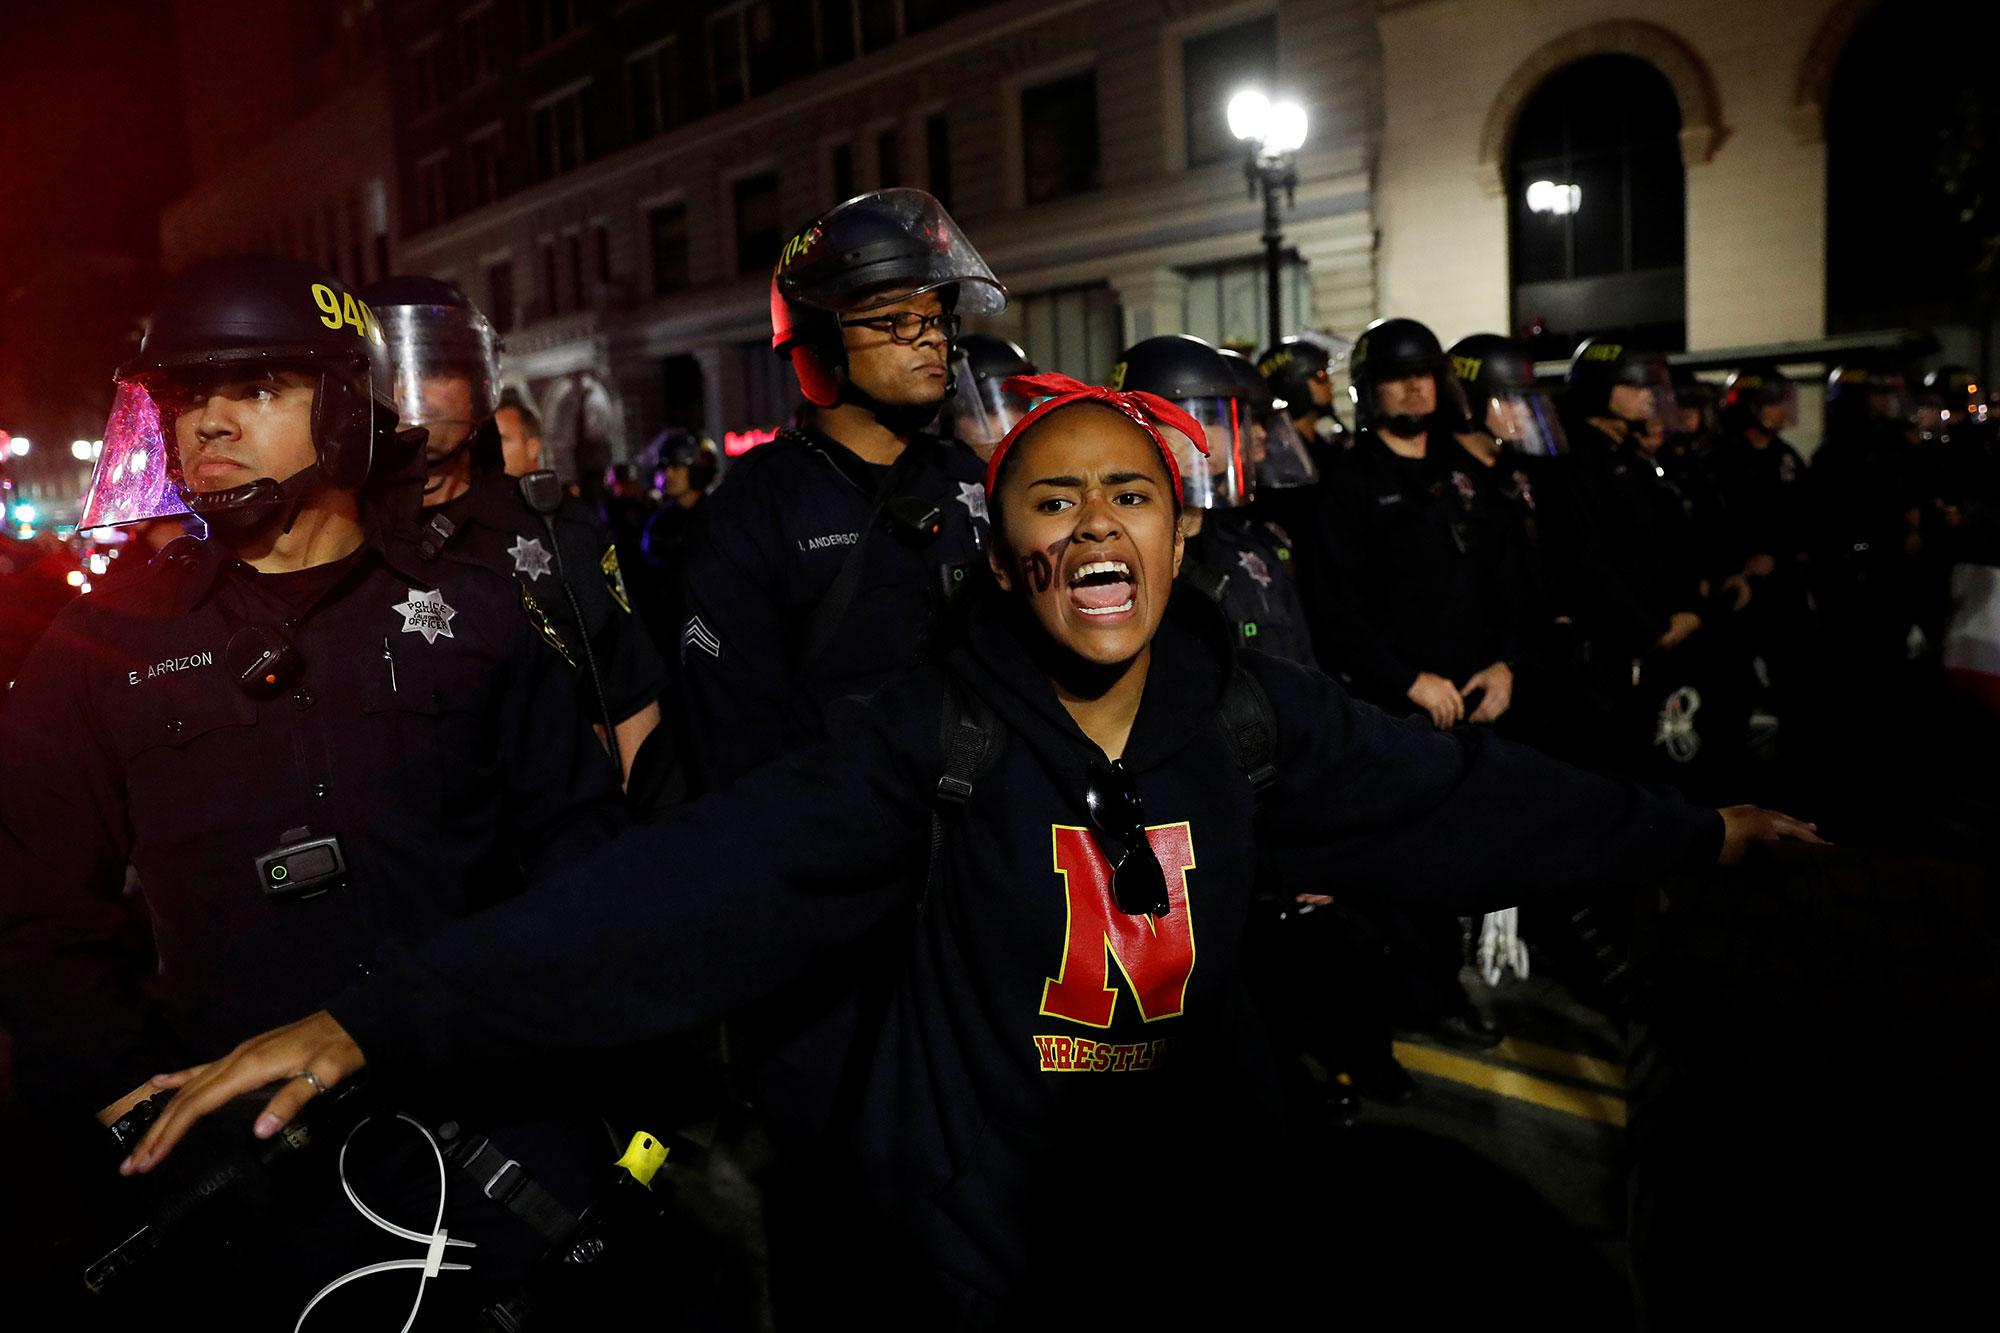 <p>A demonstrator pleads others to stand back from the police line during a demonstration following the election of Donald Trump as President of the United States, in Oakland, Calif., on Nov. 10, 2016. (Photo: Stephen Lam/Reuters) </p>